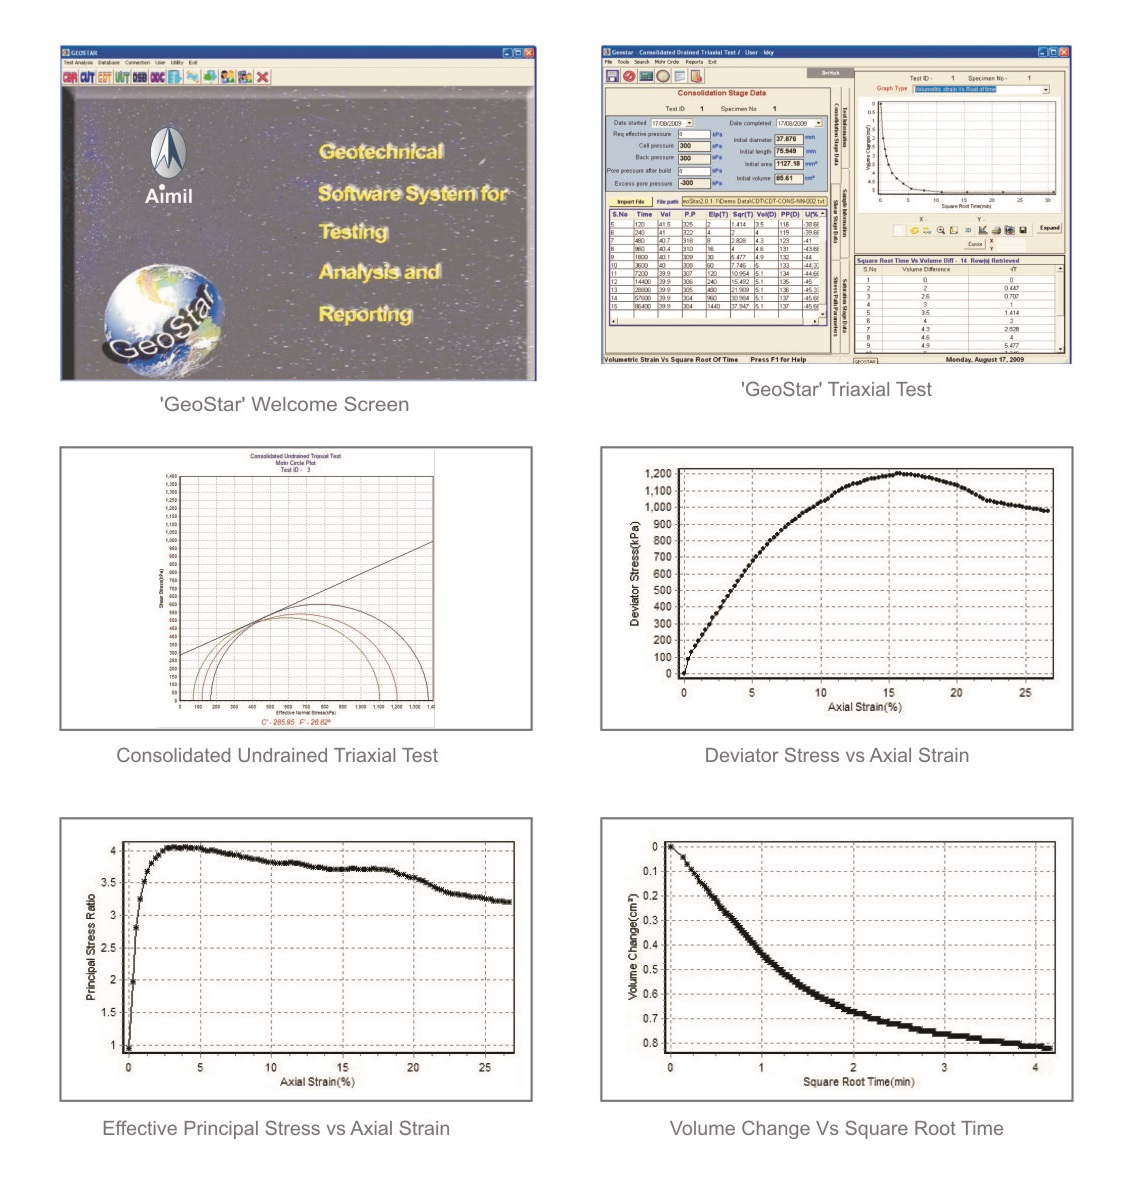 """GeoStar"" the Geotechnical Software for Testing, Analysis and Reporting """